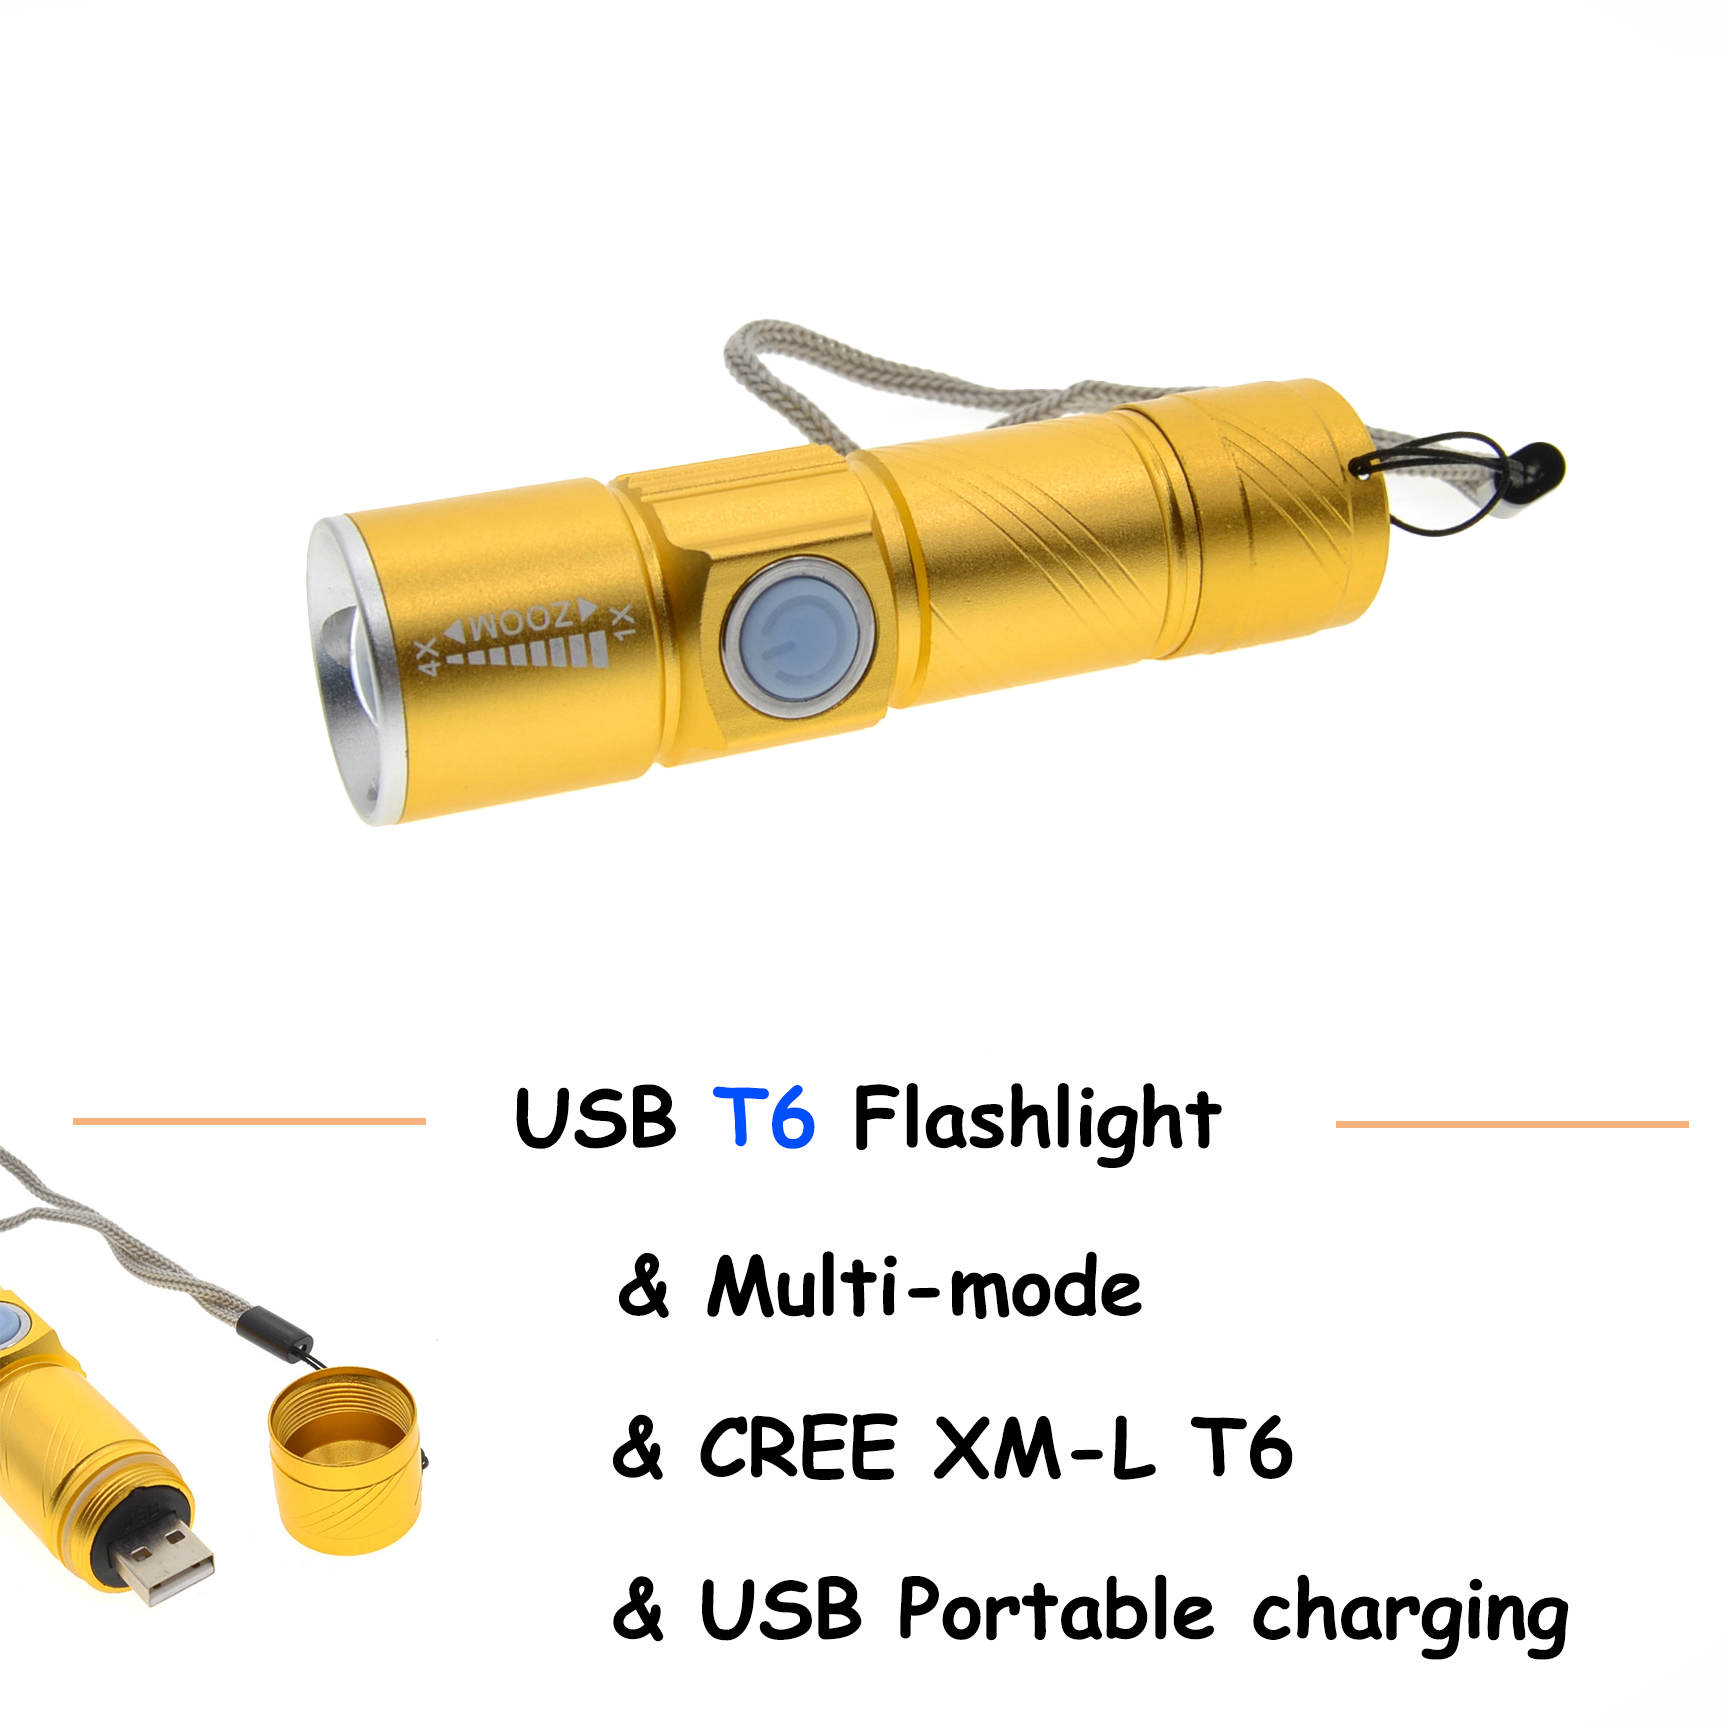 LED Flashlight USB Handy Powerful Rechargeable Torch usb Flash Light Bike Pocket LED Zoomable Lamp warsun 268 lumen mini handy led torch flash light rechargeable zoomable lamp lantern linternas flashlight for hunting zoom8